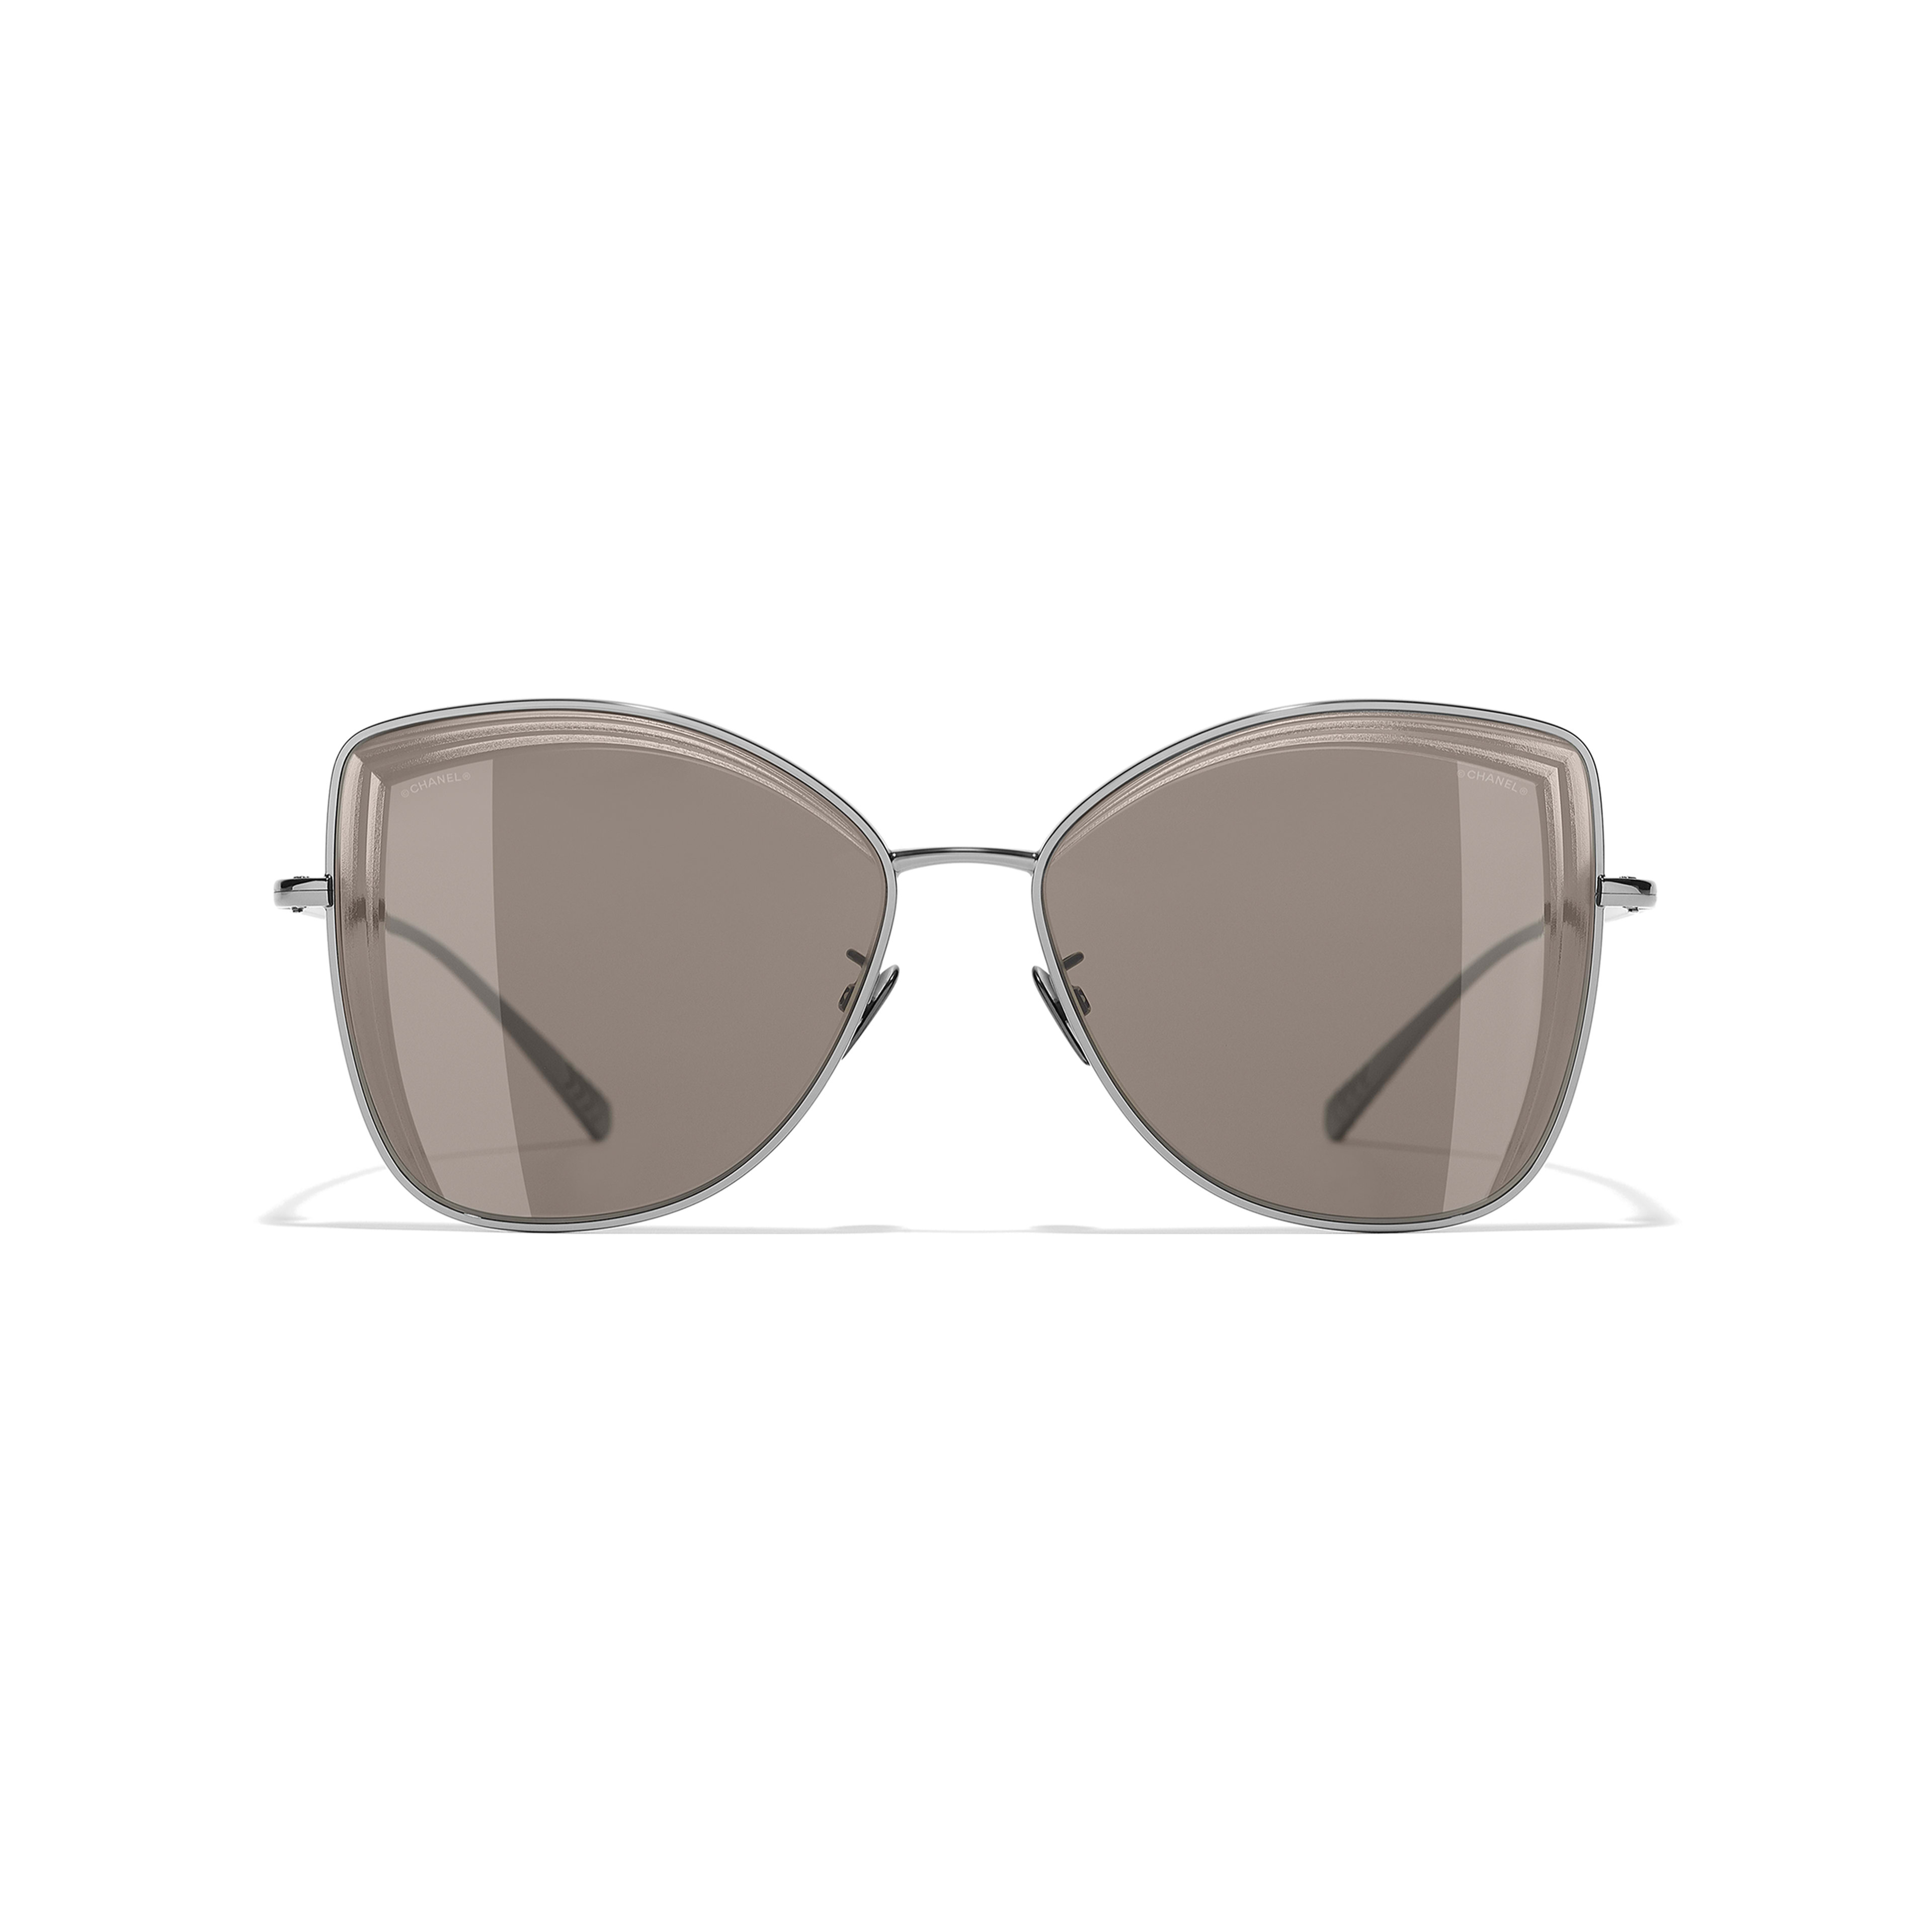 Butterfly Sunglasses - Dark Silver - Metal - Alternative view - see full sized version